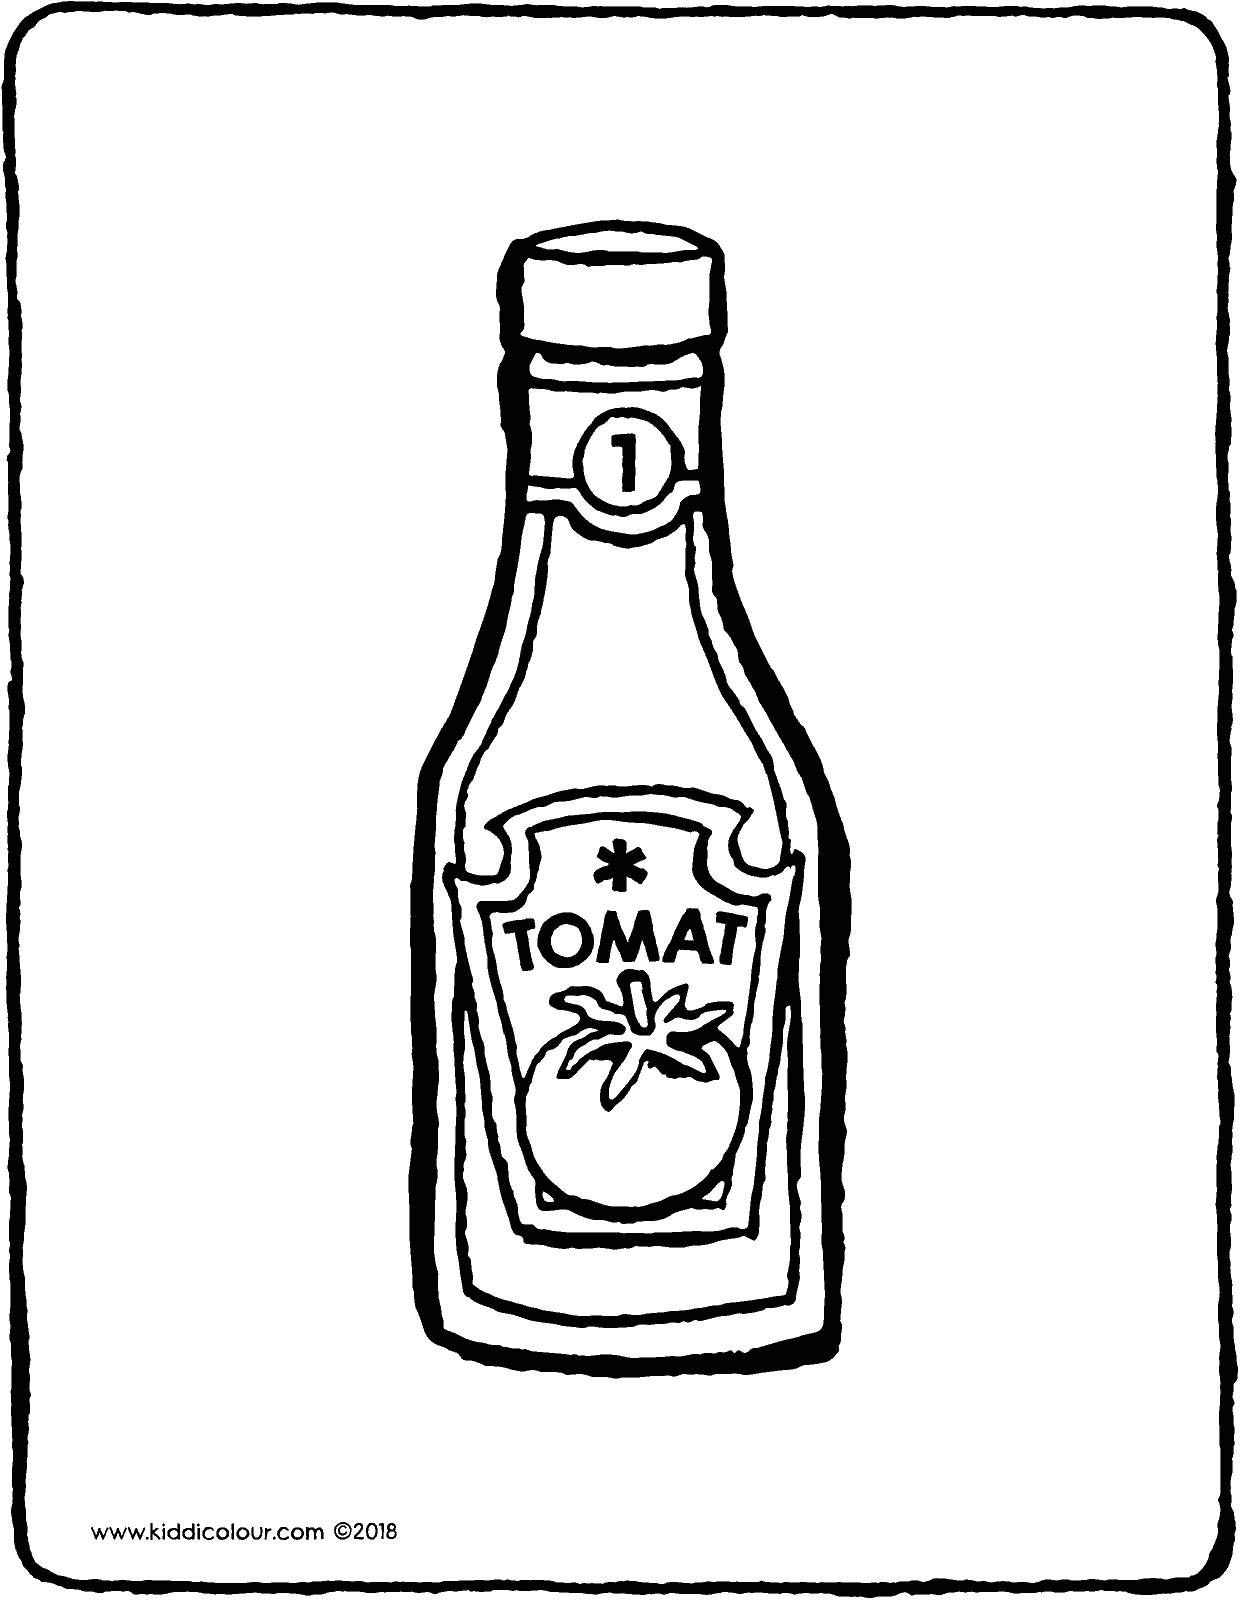 a bottle of ketchup colouring page drawing picture 01V